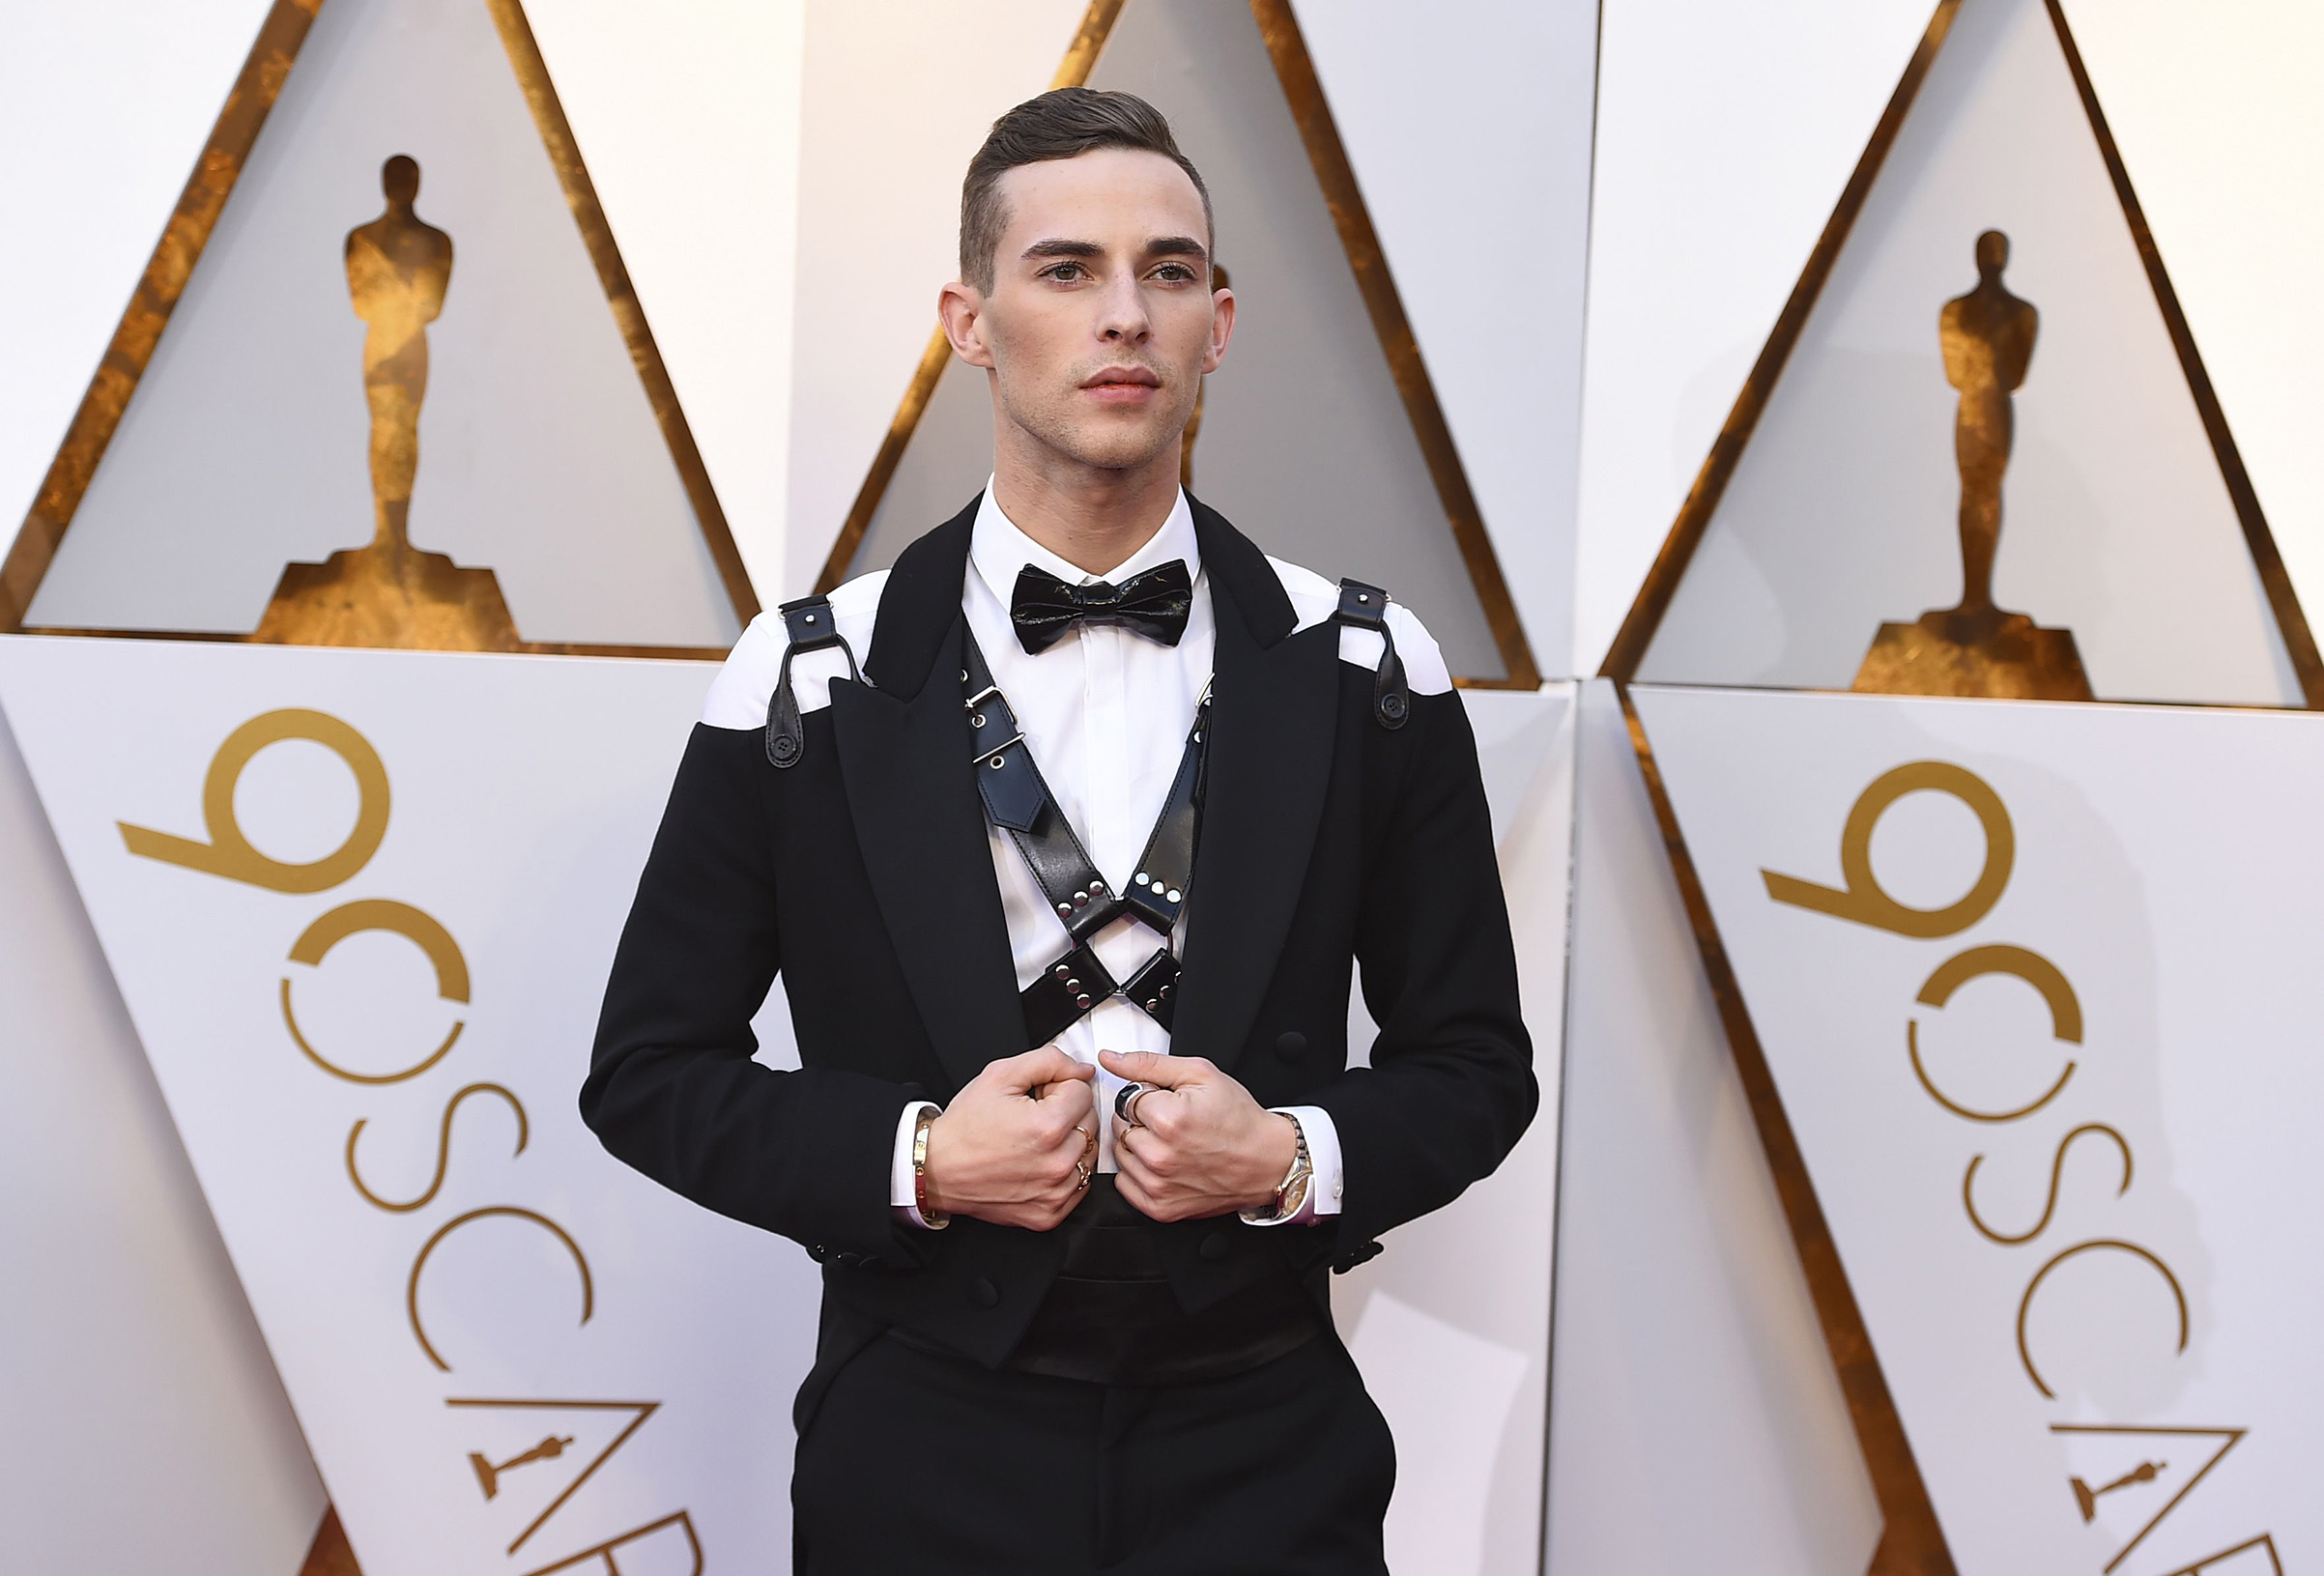 Adam Rippon arrives at the Oscars, at the Dolby Theatre on March 4.